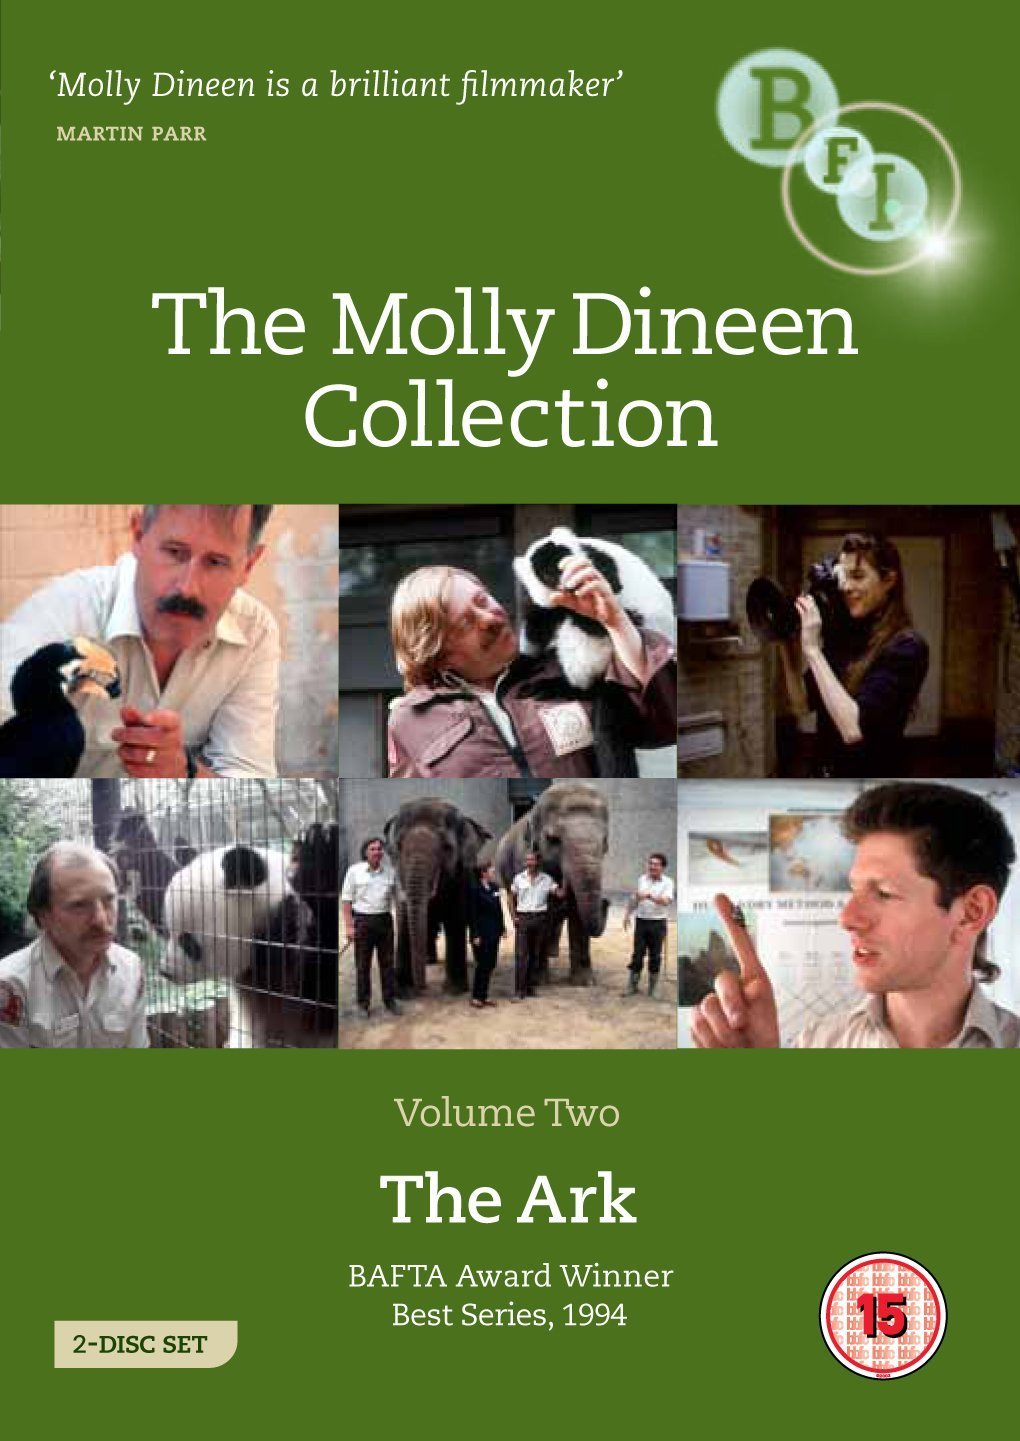 The Molly Dineen Collection Volume Two DVD cover